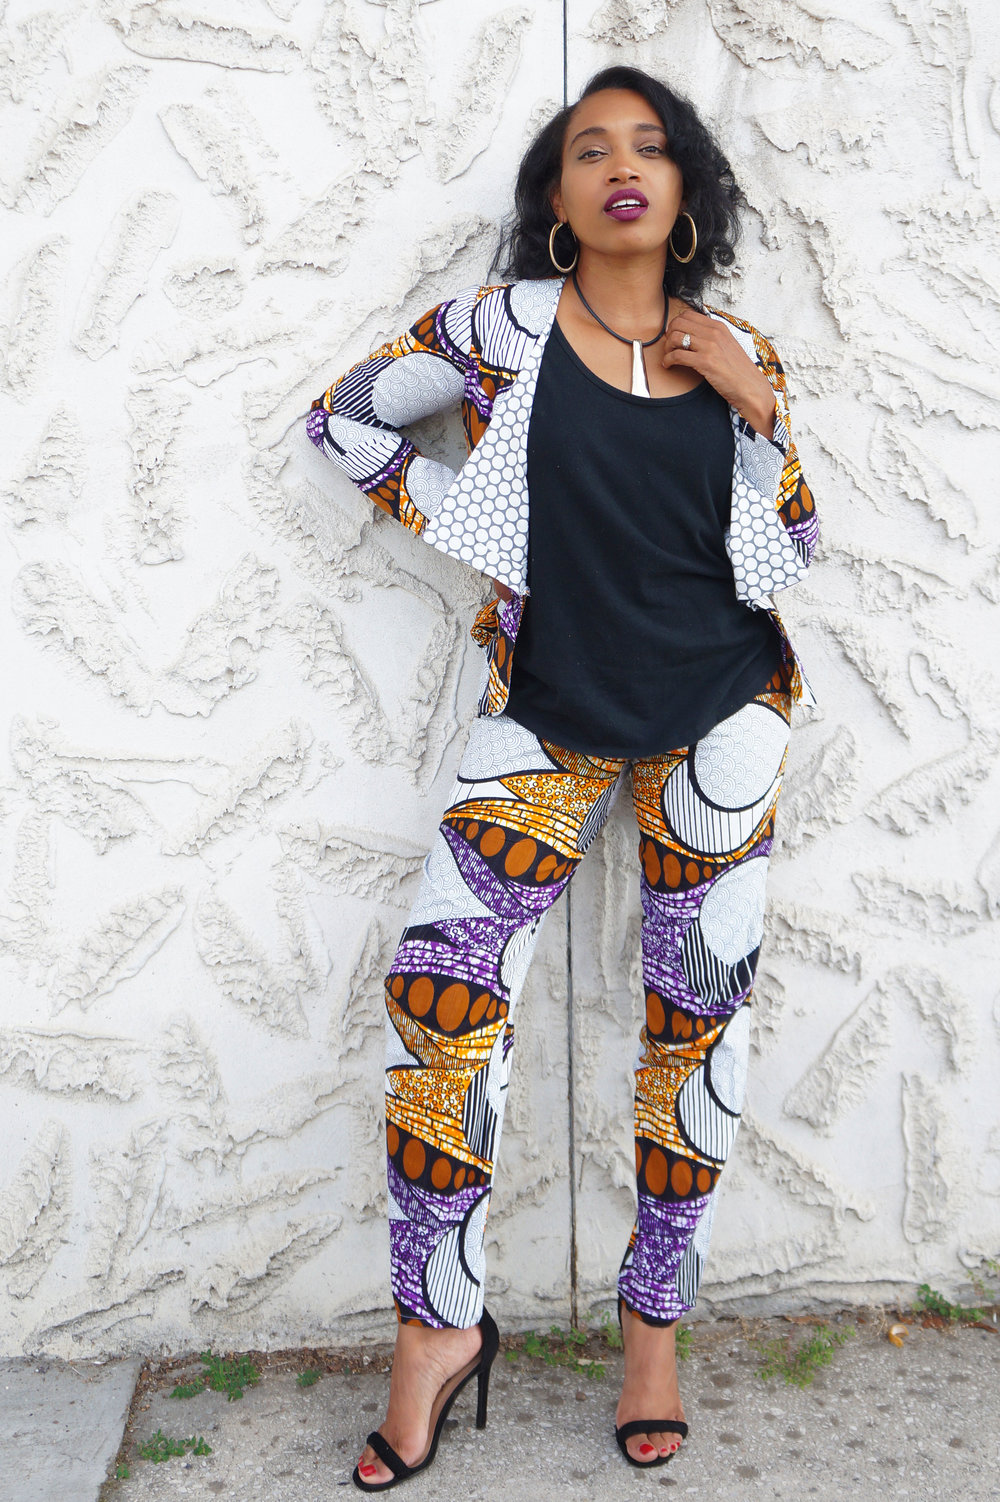 Andrea Fenise Memphis Fashion Blogger shares outfit of the day in an African Print Pantsuit and Blazer Memphis Fashion Bloggers